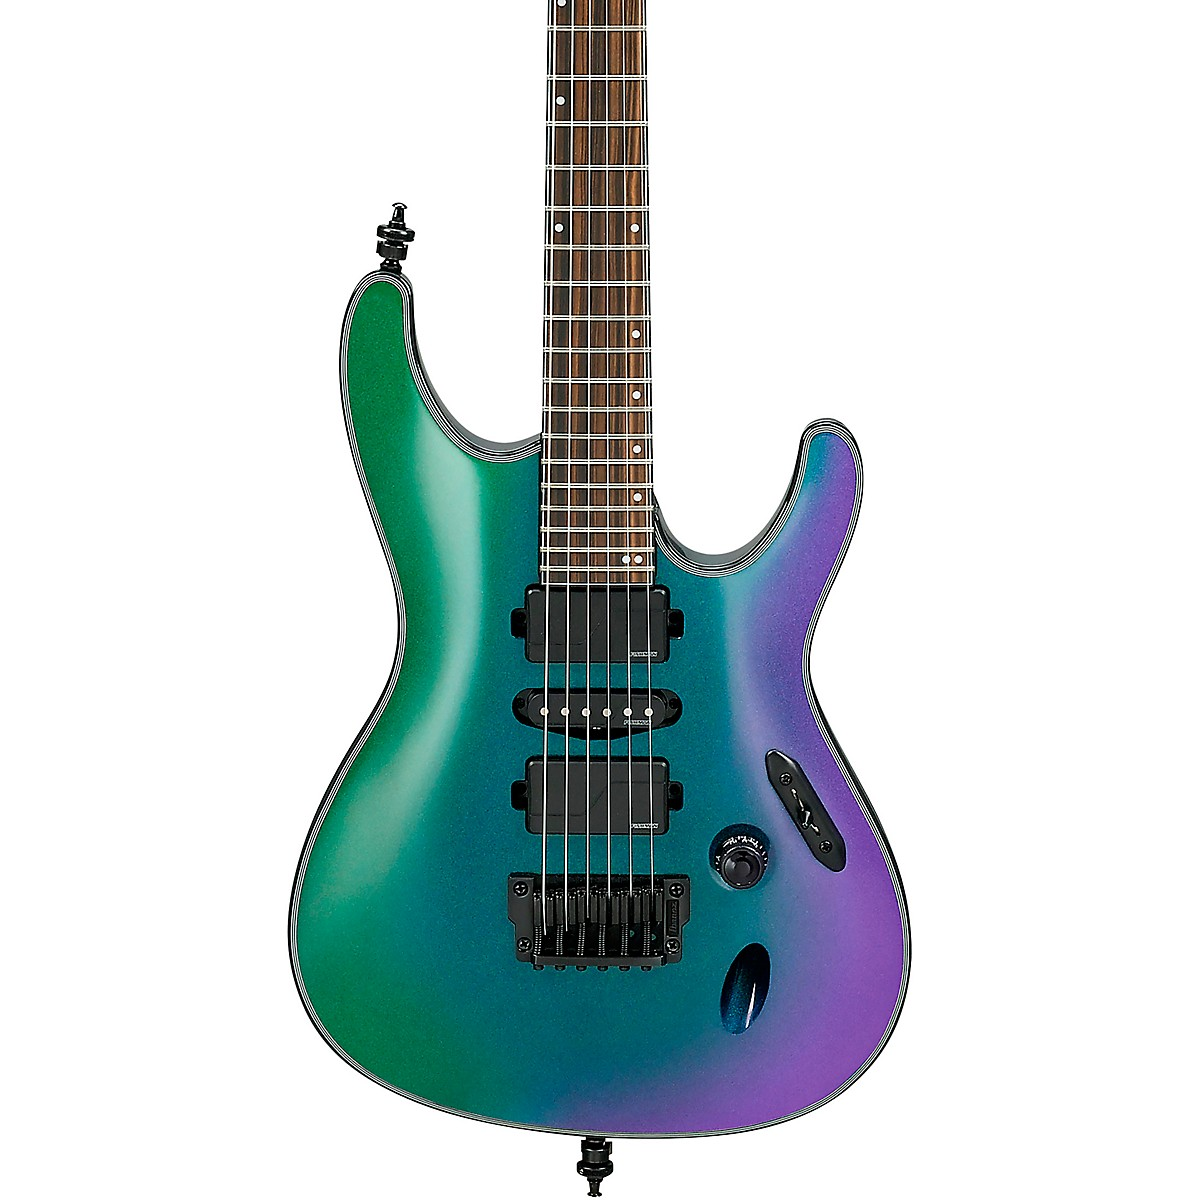 Ibanez S671ALB S Axion Label 6st Electric Guitar